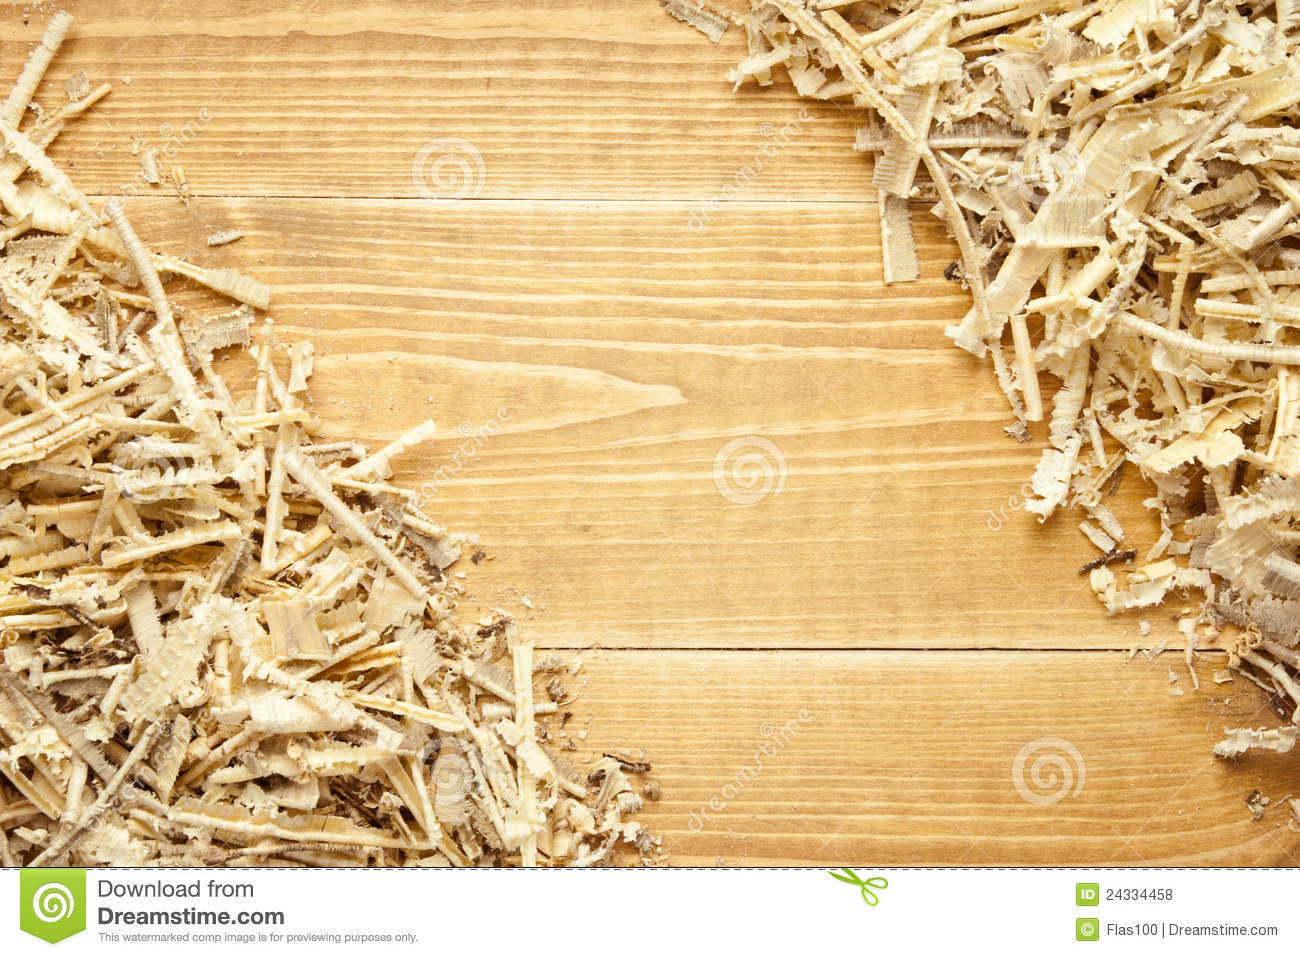 Wooden Sawdust And Shavings Background Royalty Free Stock